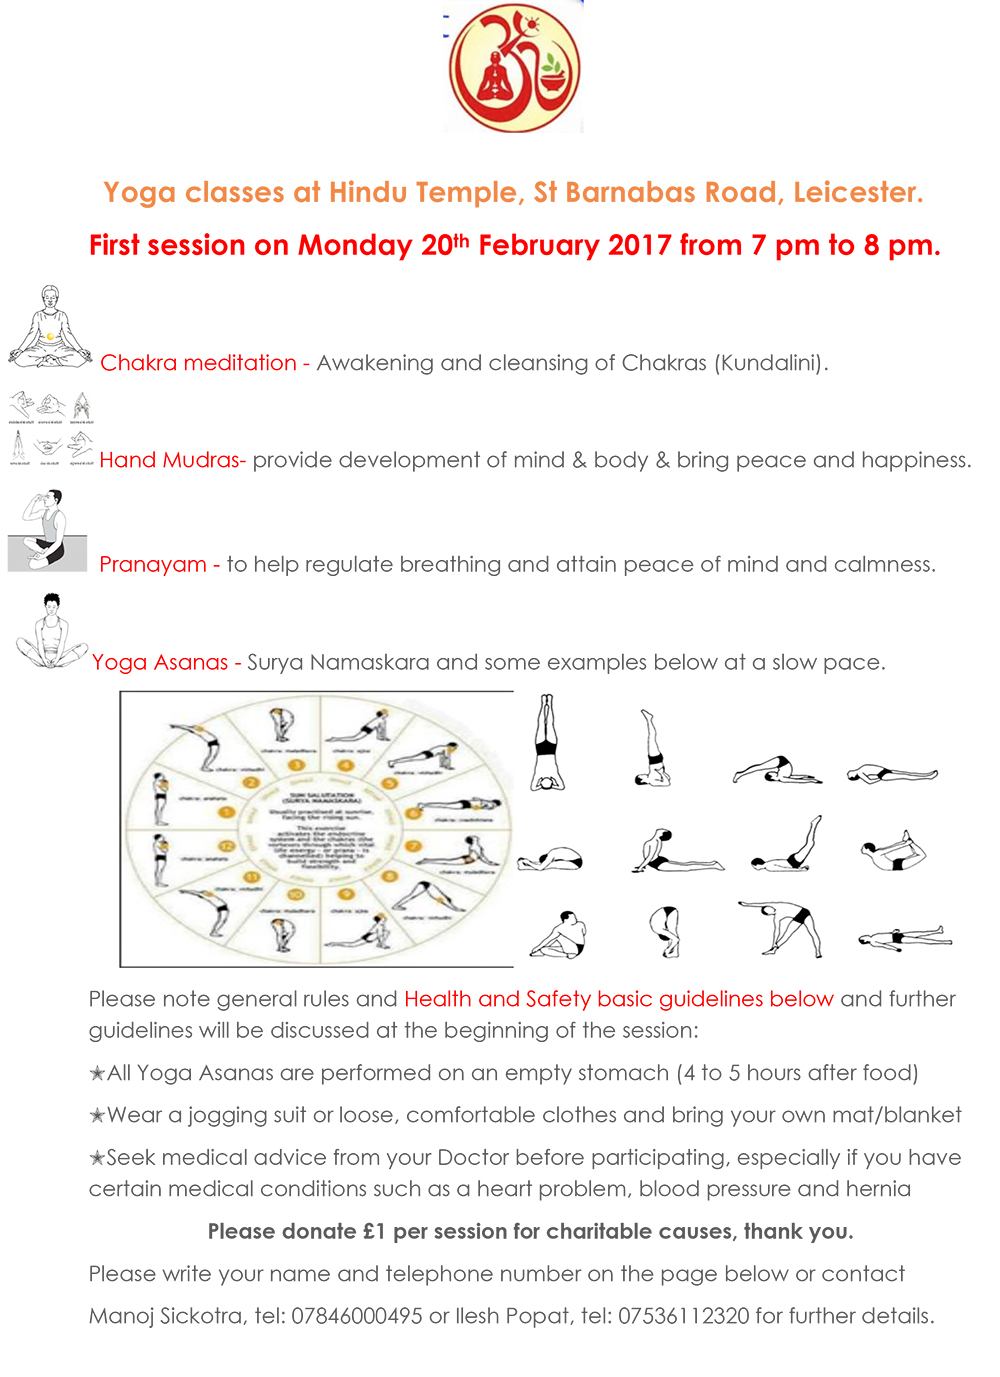 Yoga classes at Hindu Temple, St Barnabas Road, Leicester.  First session on Monday 20th February 2017 from 7 pm to 8 pm